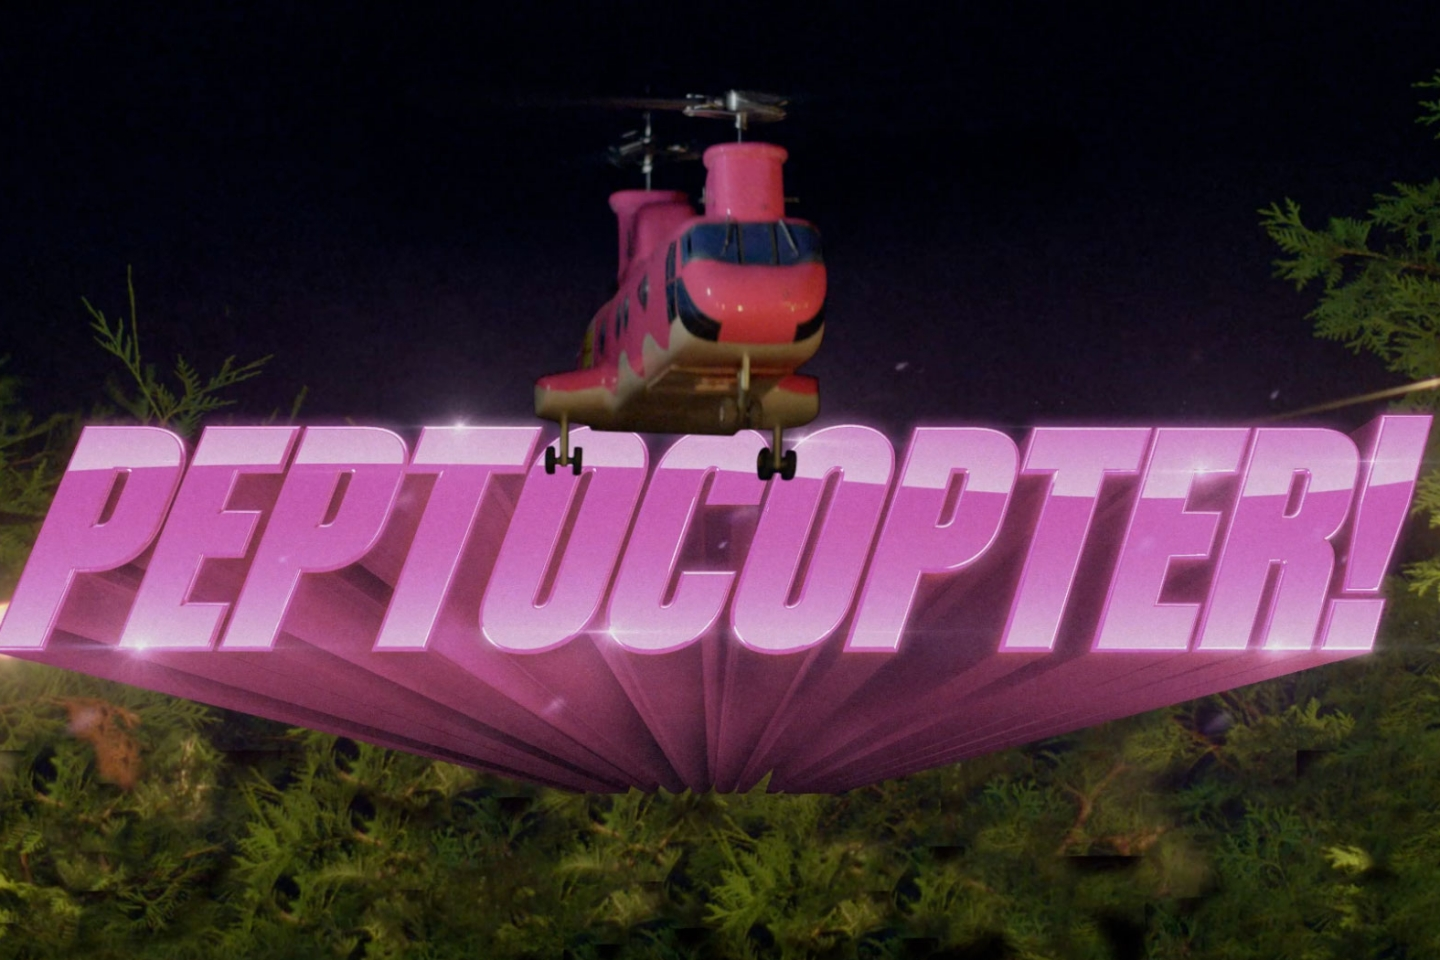 UNILEVER – PEPTOCOPTER